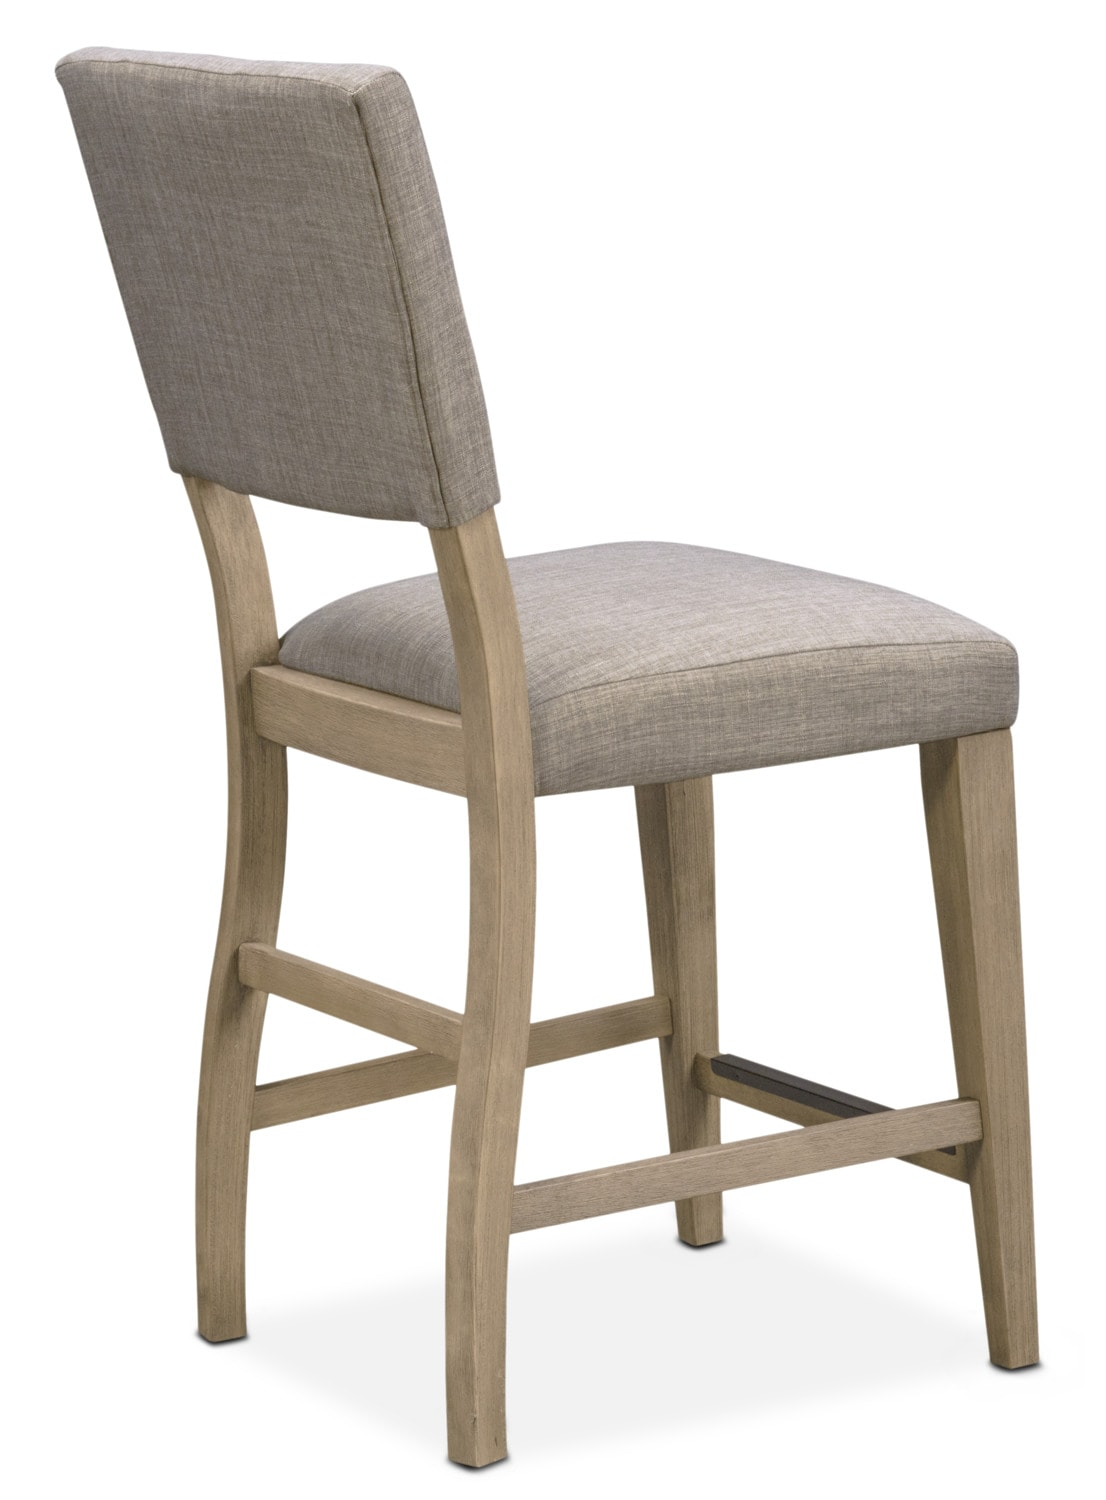 upholstered counter height chair wheelchair crash tribeca side gray